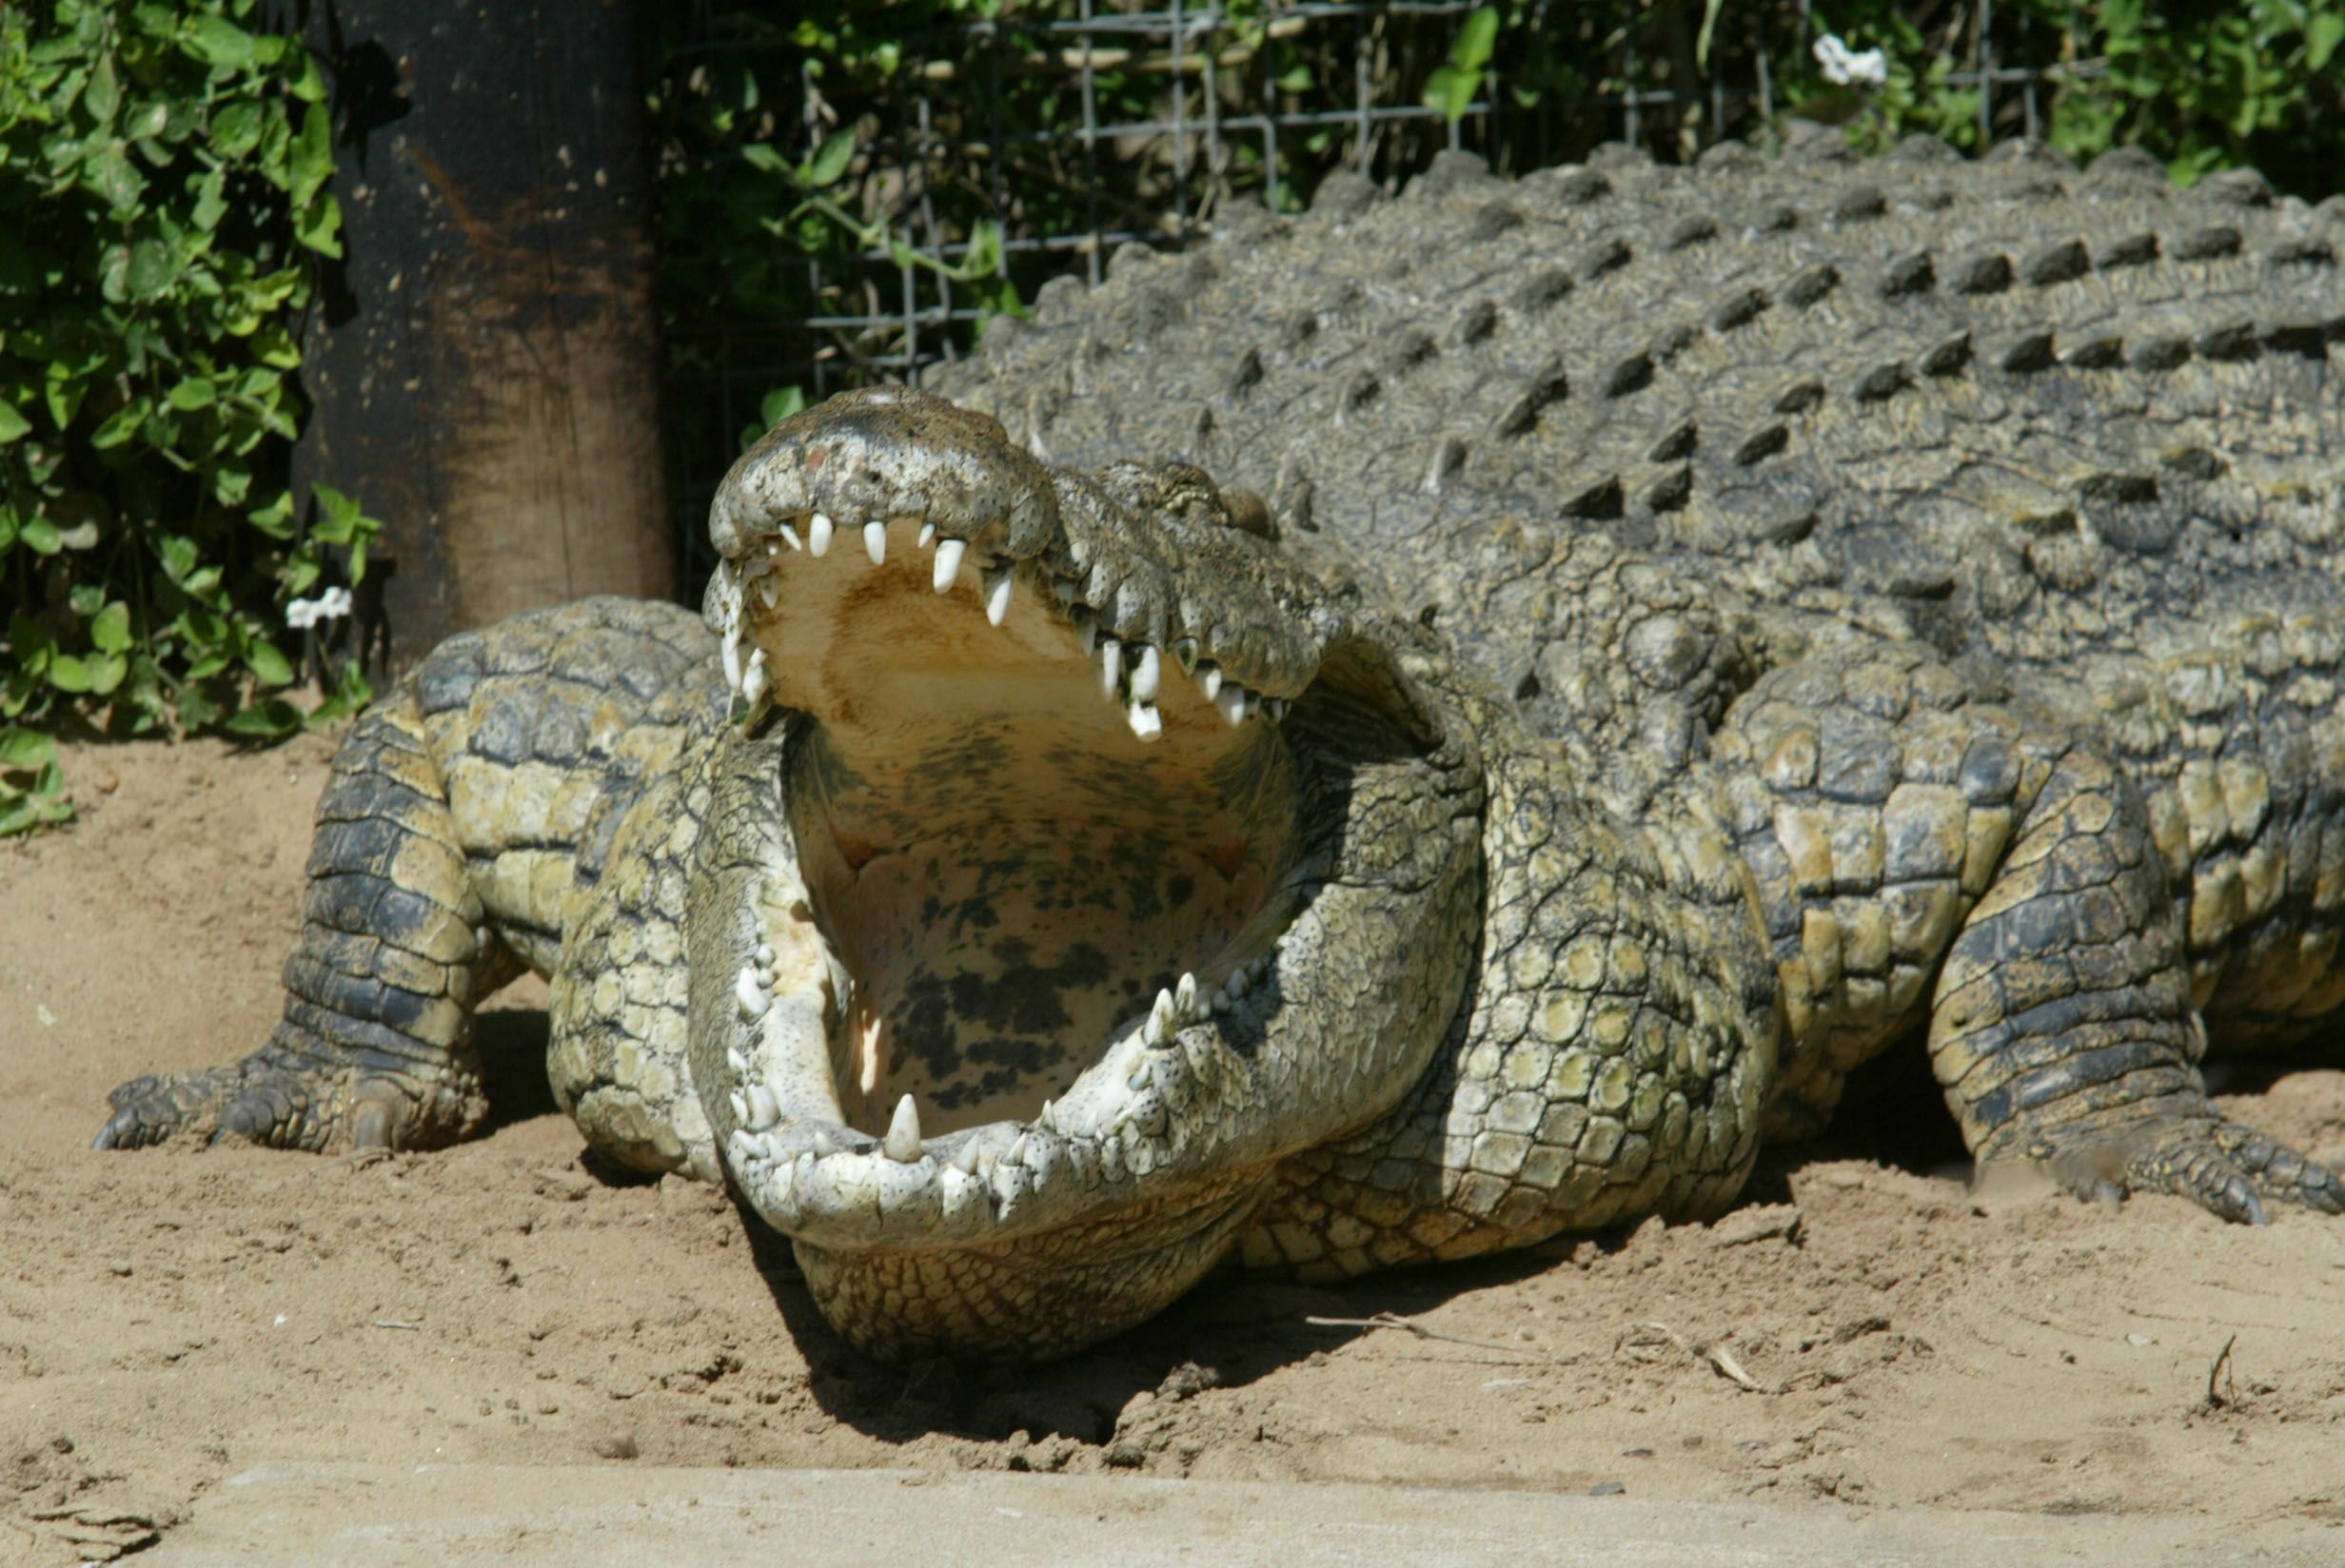 Nile Crocodiles Are in Florida, but No Need to Panic on toucan map, alligator range map, mosasaur map, american alligator map, shark map, brown hyena map, hippo map, emperor penguin map, hamster map, spectacled caiman map, cockroach map, crocodilian map, turtle map, deer map, cheetah map, boar map, striped hyena map, serval map, gopher map, water monitor map,